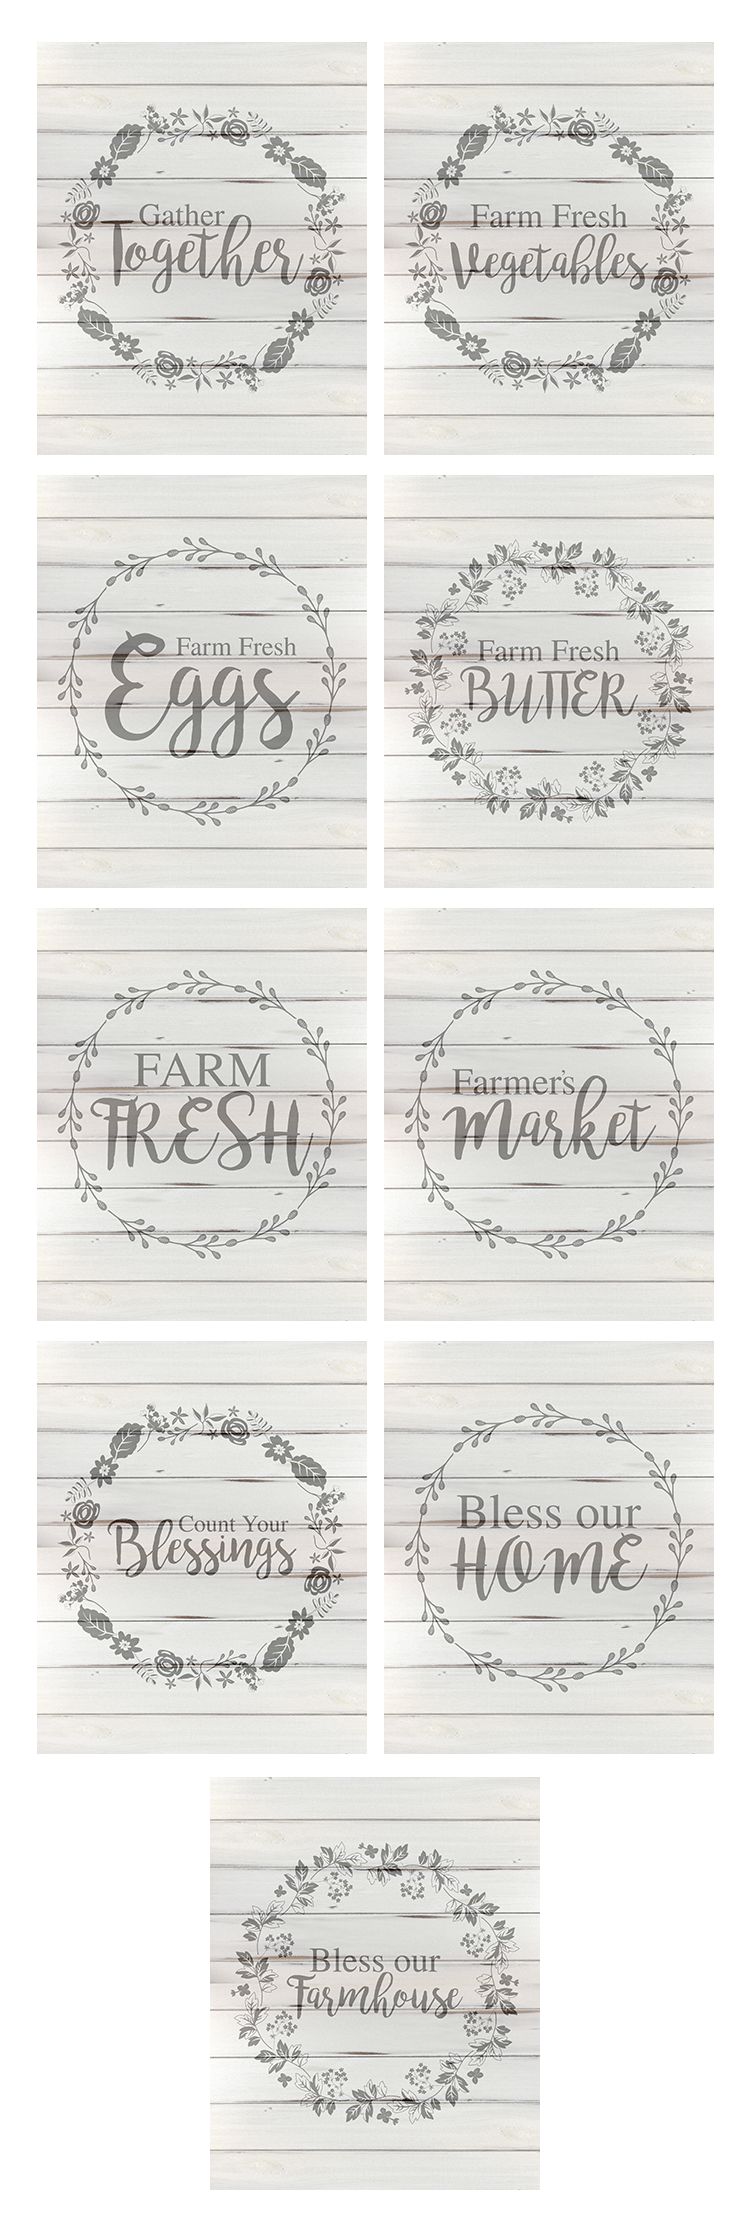 These free farmhouse themed printables are simple and adorable.